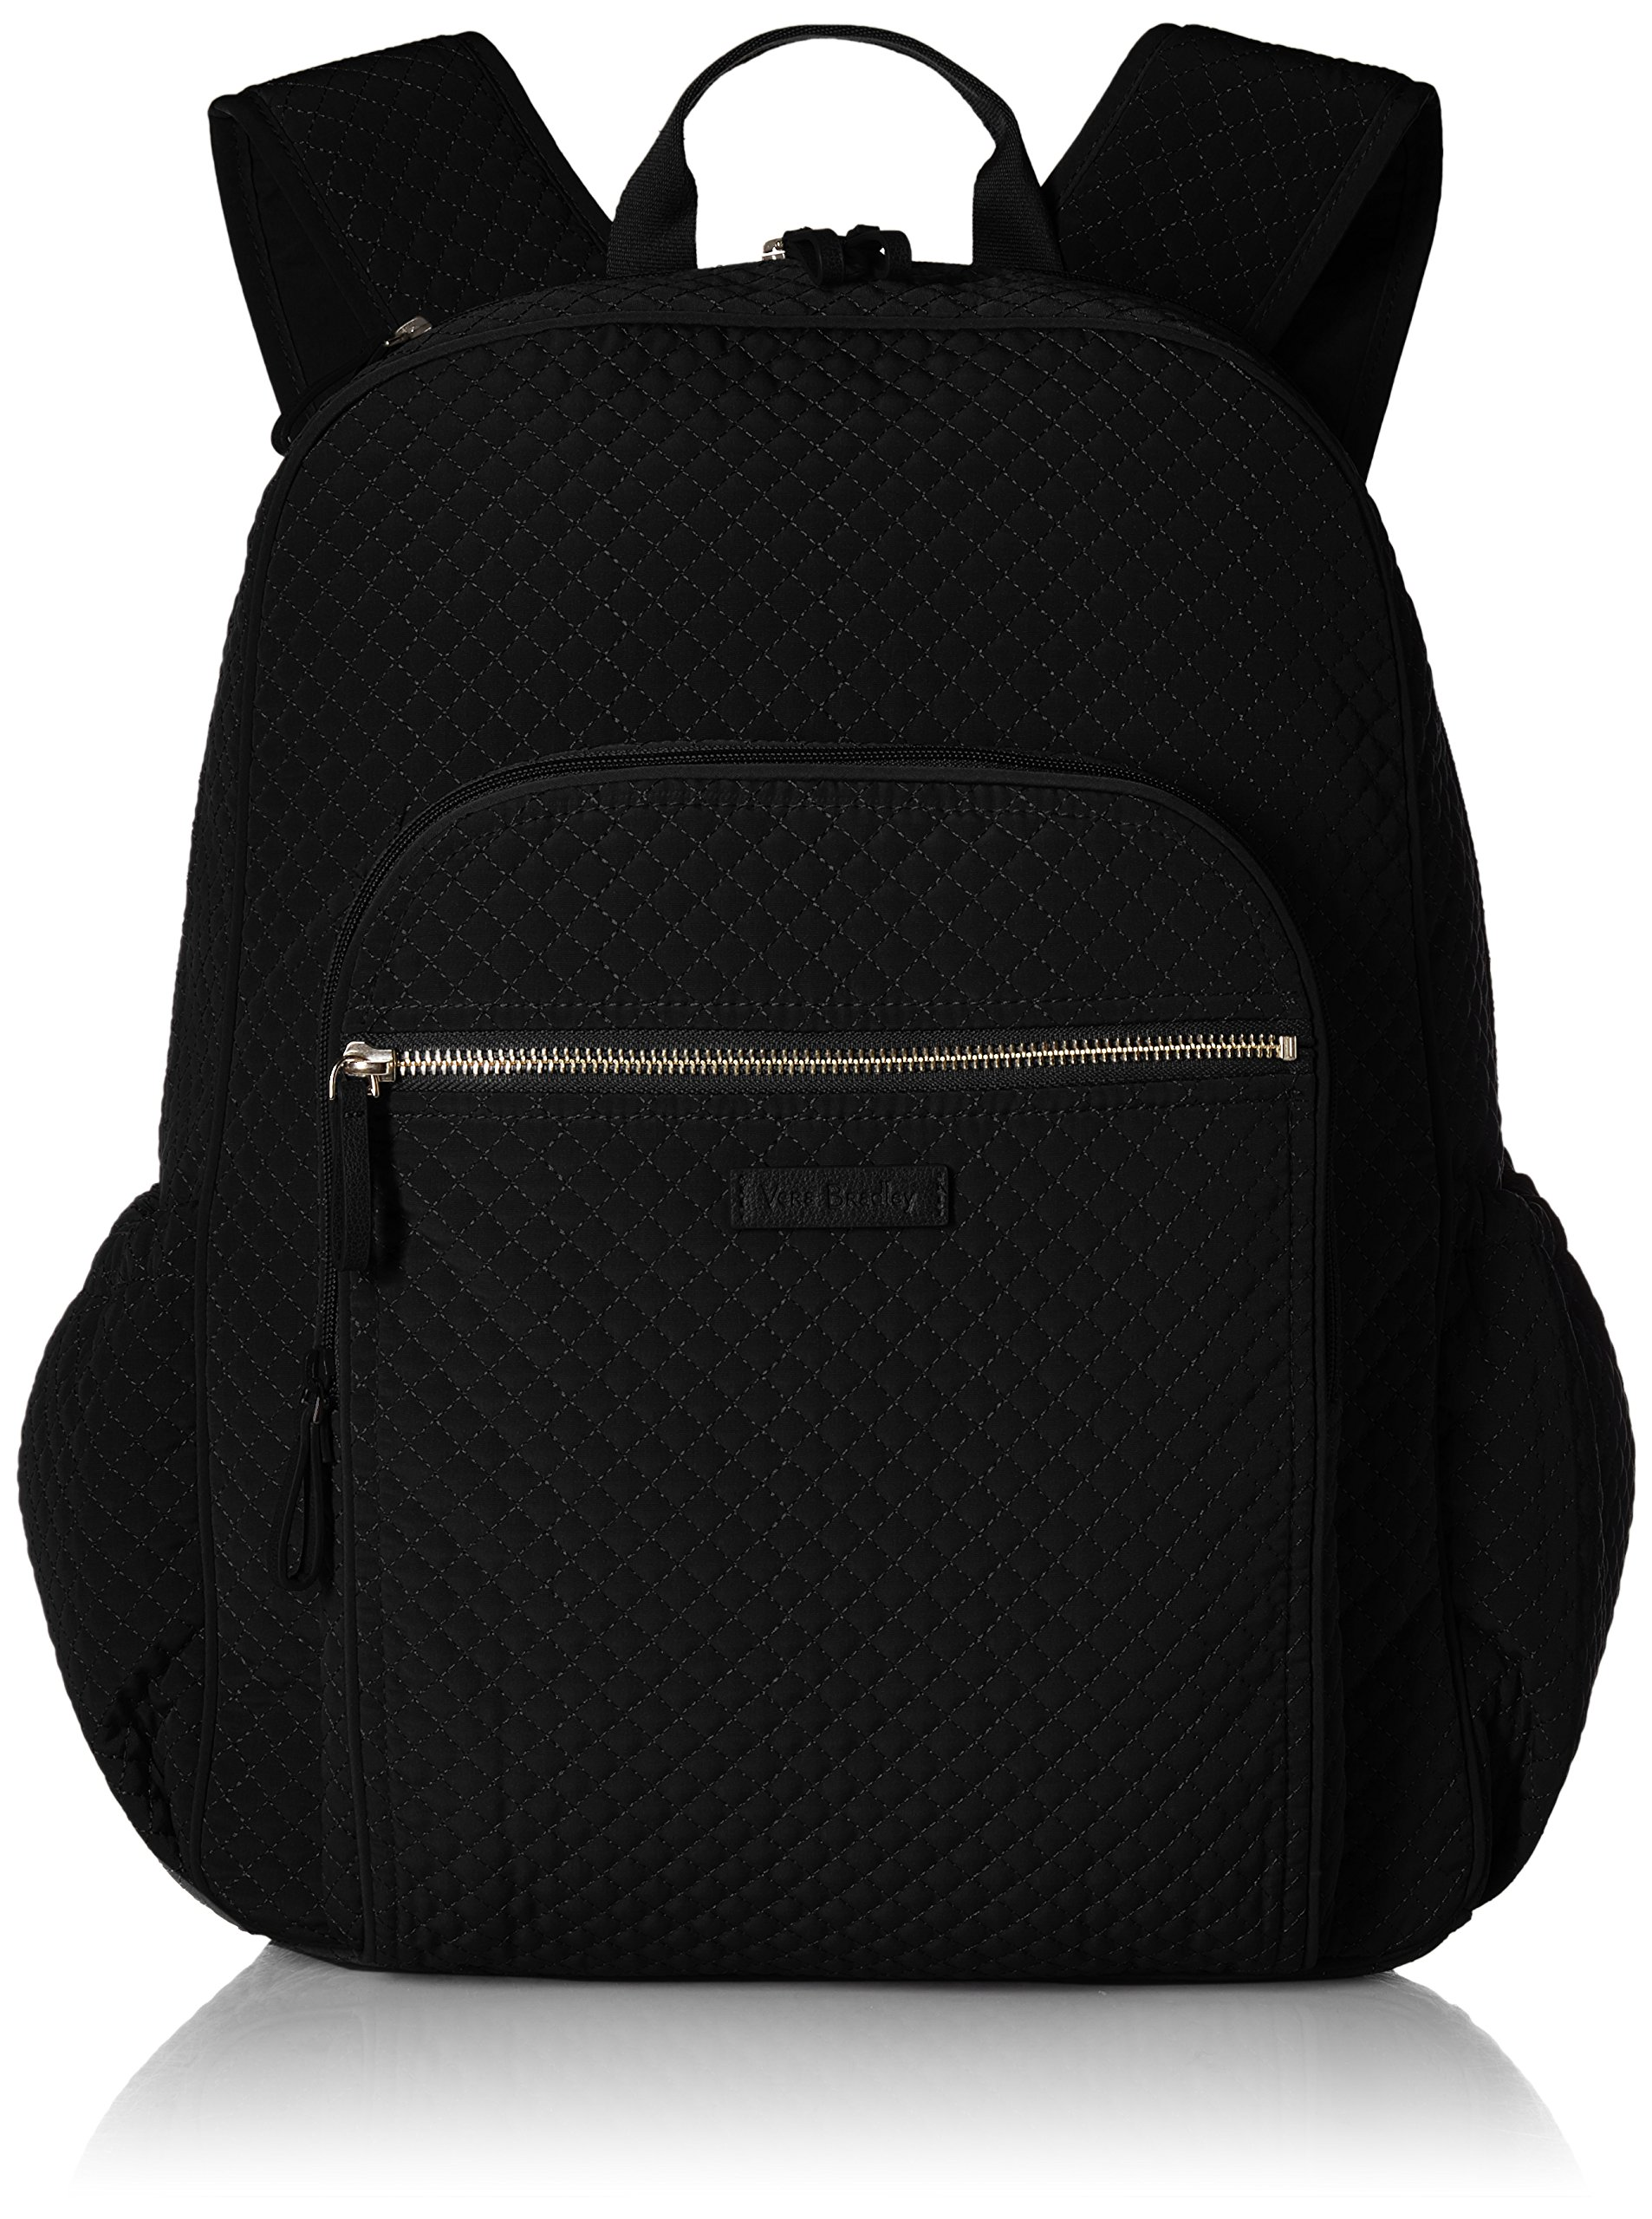 Vera Bradley Iconic Campus Backpack, Microfiber, Classic Black Black